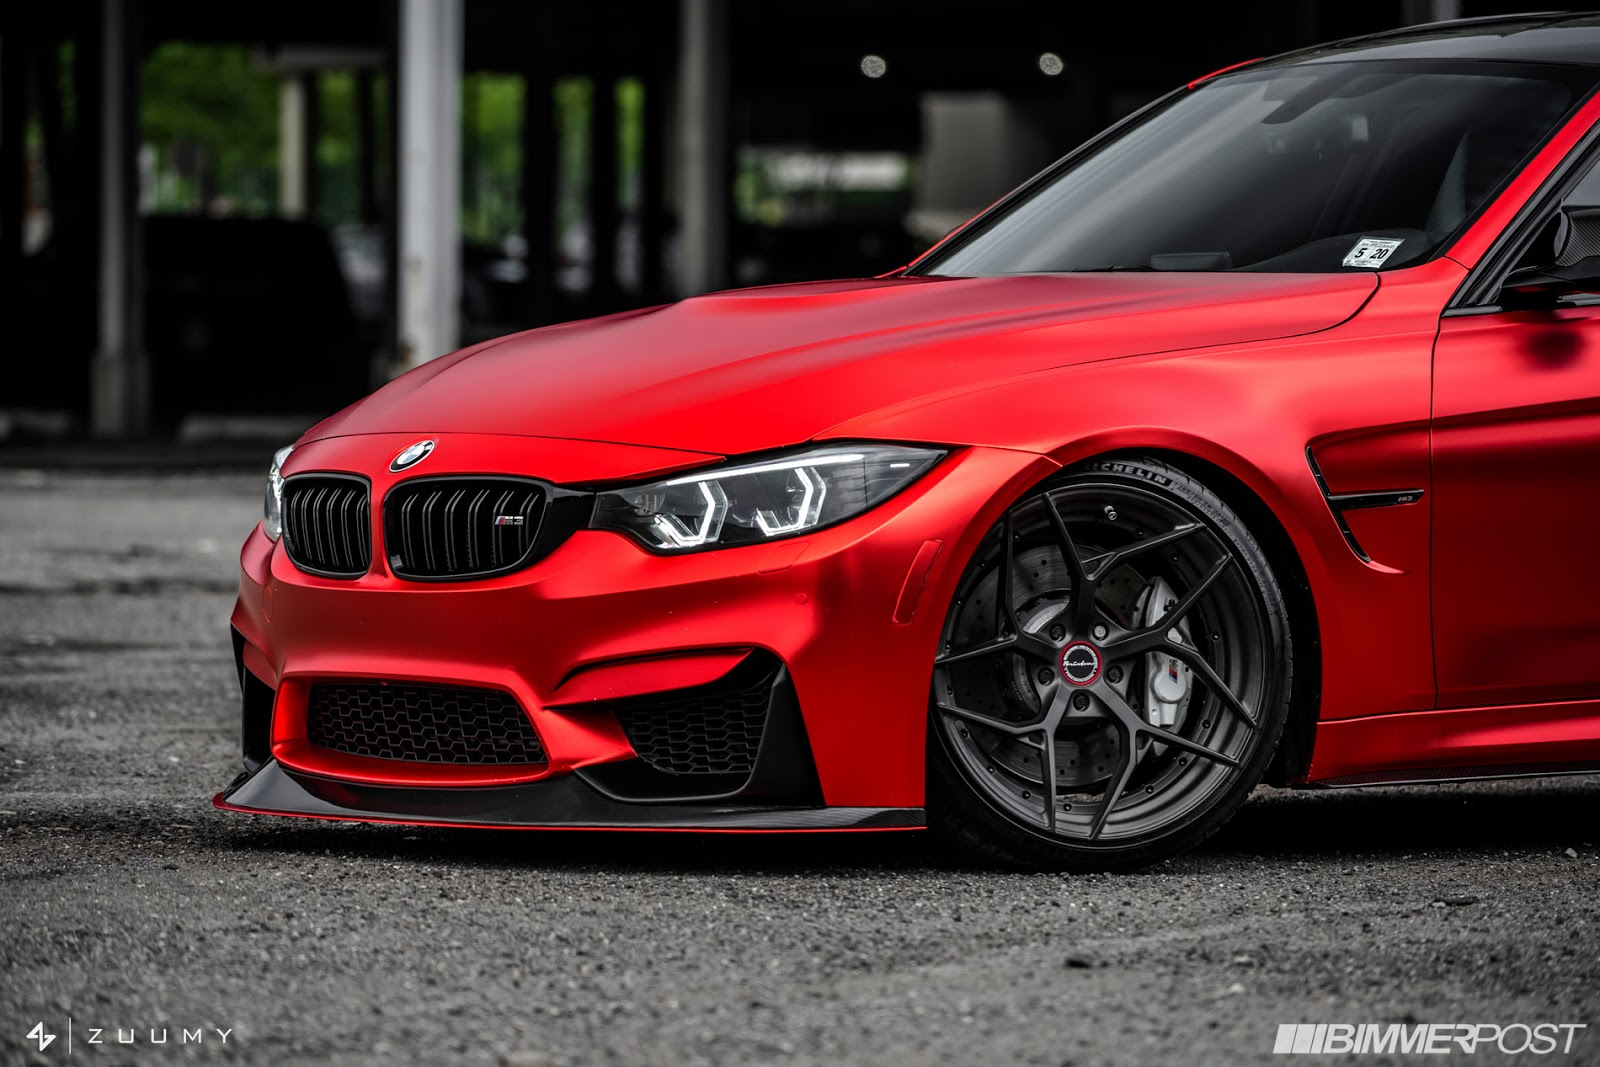 Wallpapers Of Car Corvette Convertible With Black Lights What Do You Say About This Satin Red Bmw M3 Tune Carscoops